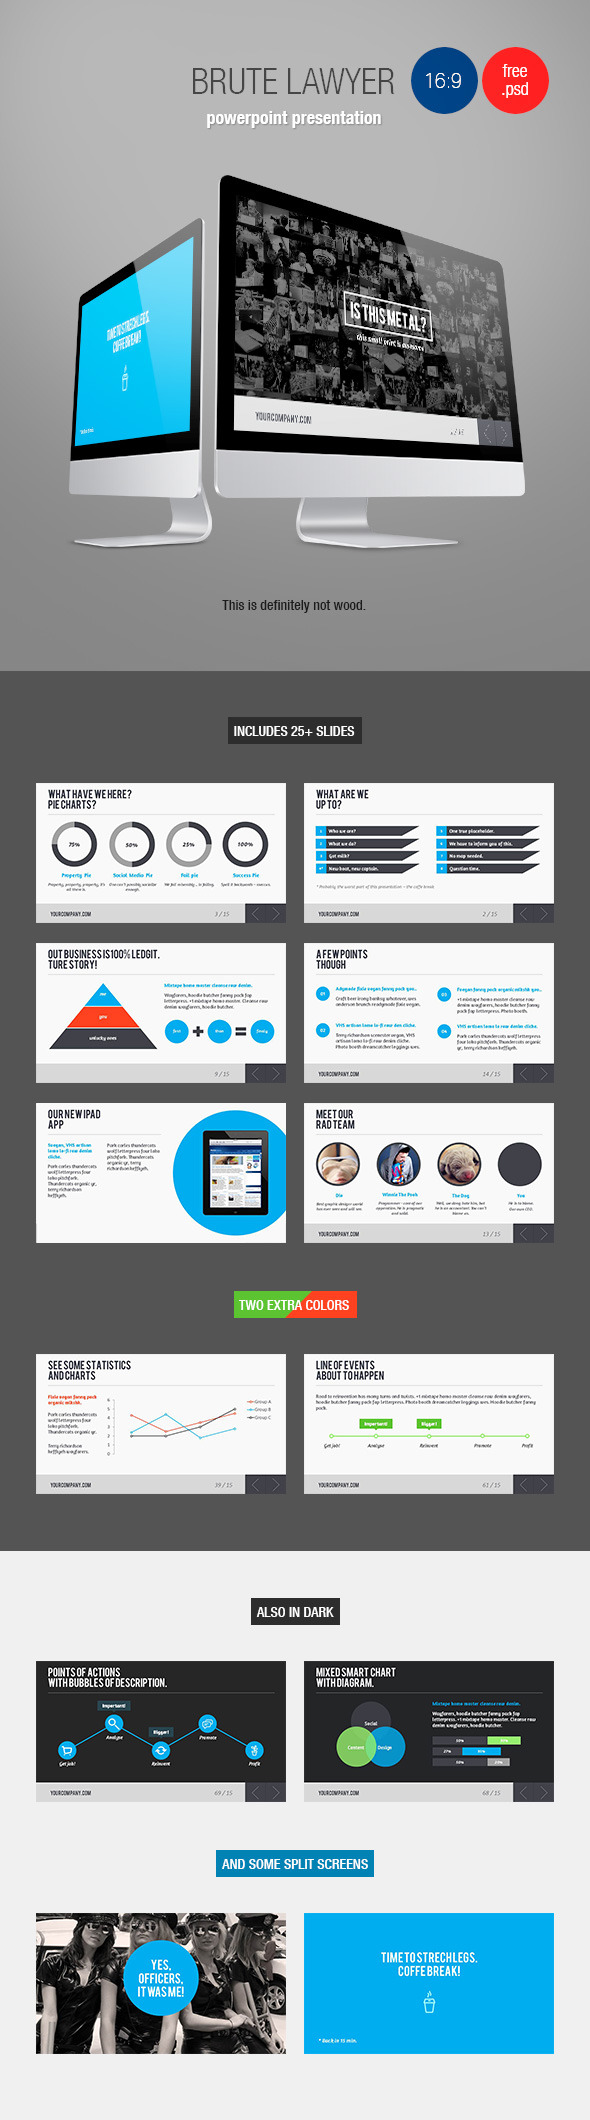 Graphicriver swiss style powerpoint template torrent info for Powerpoint templates torrents